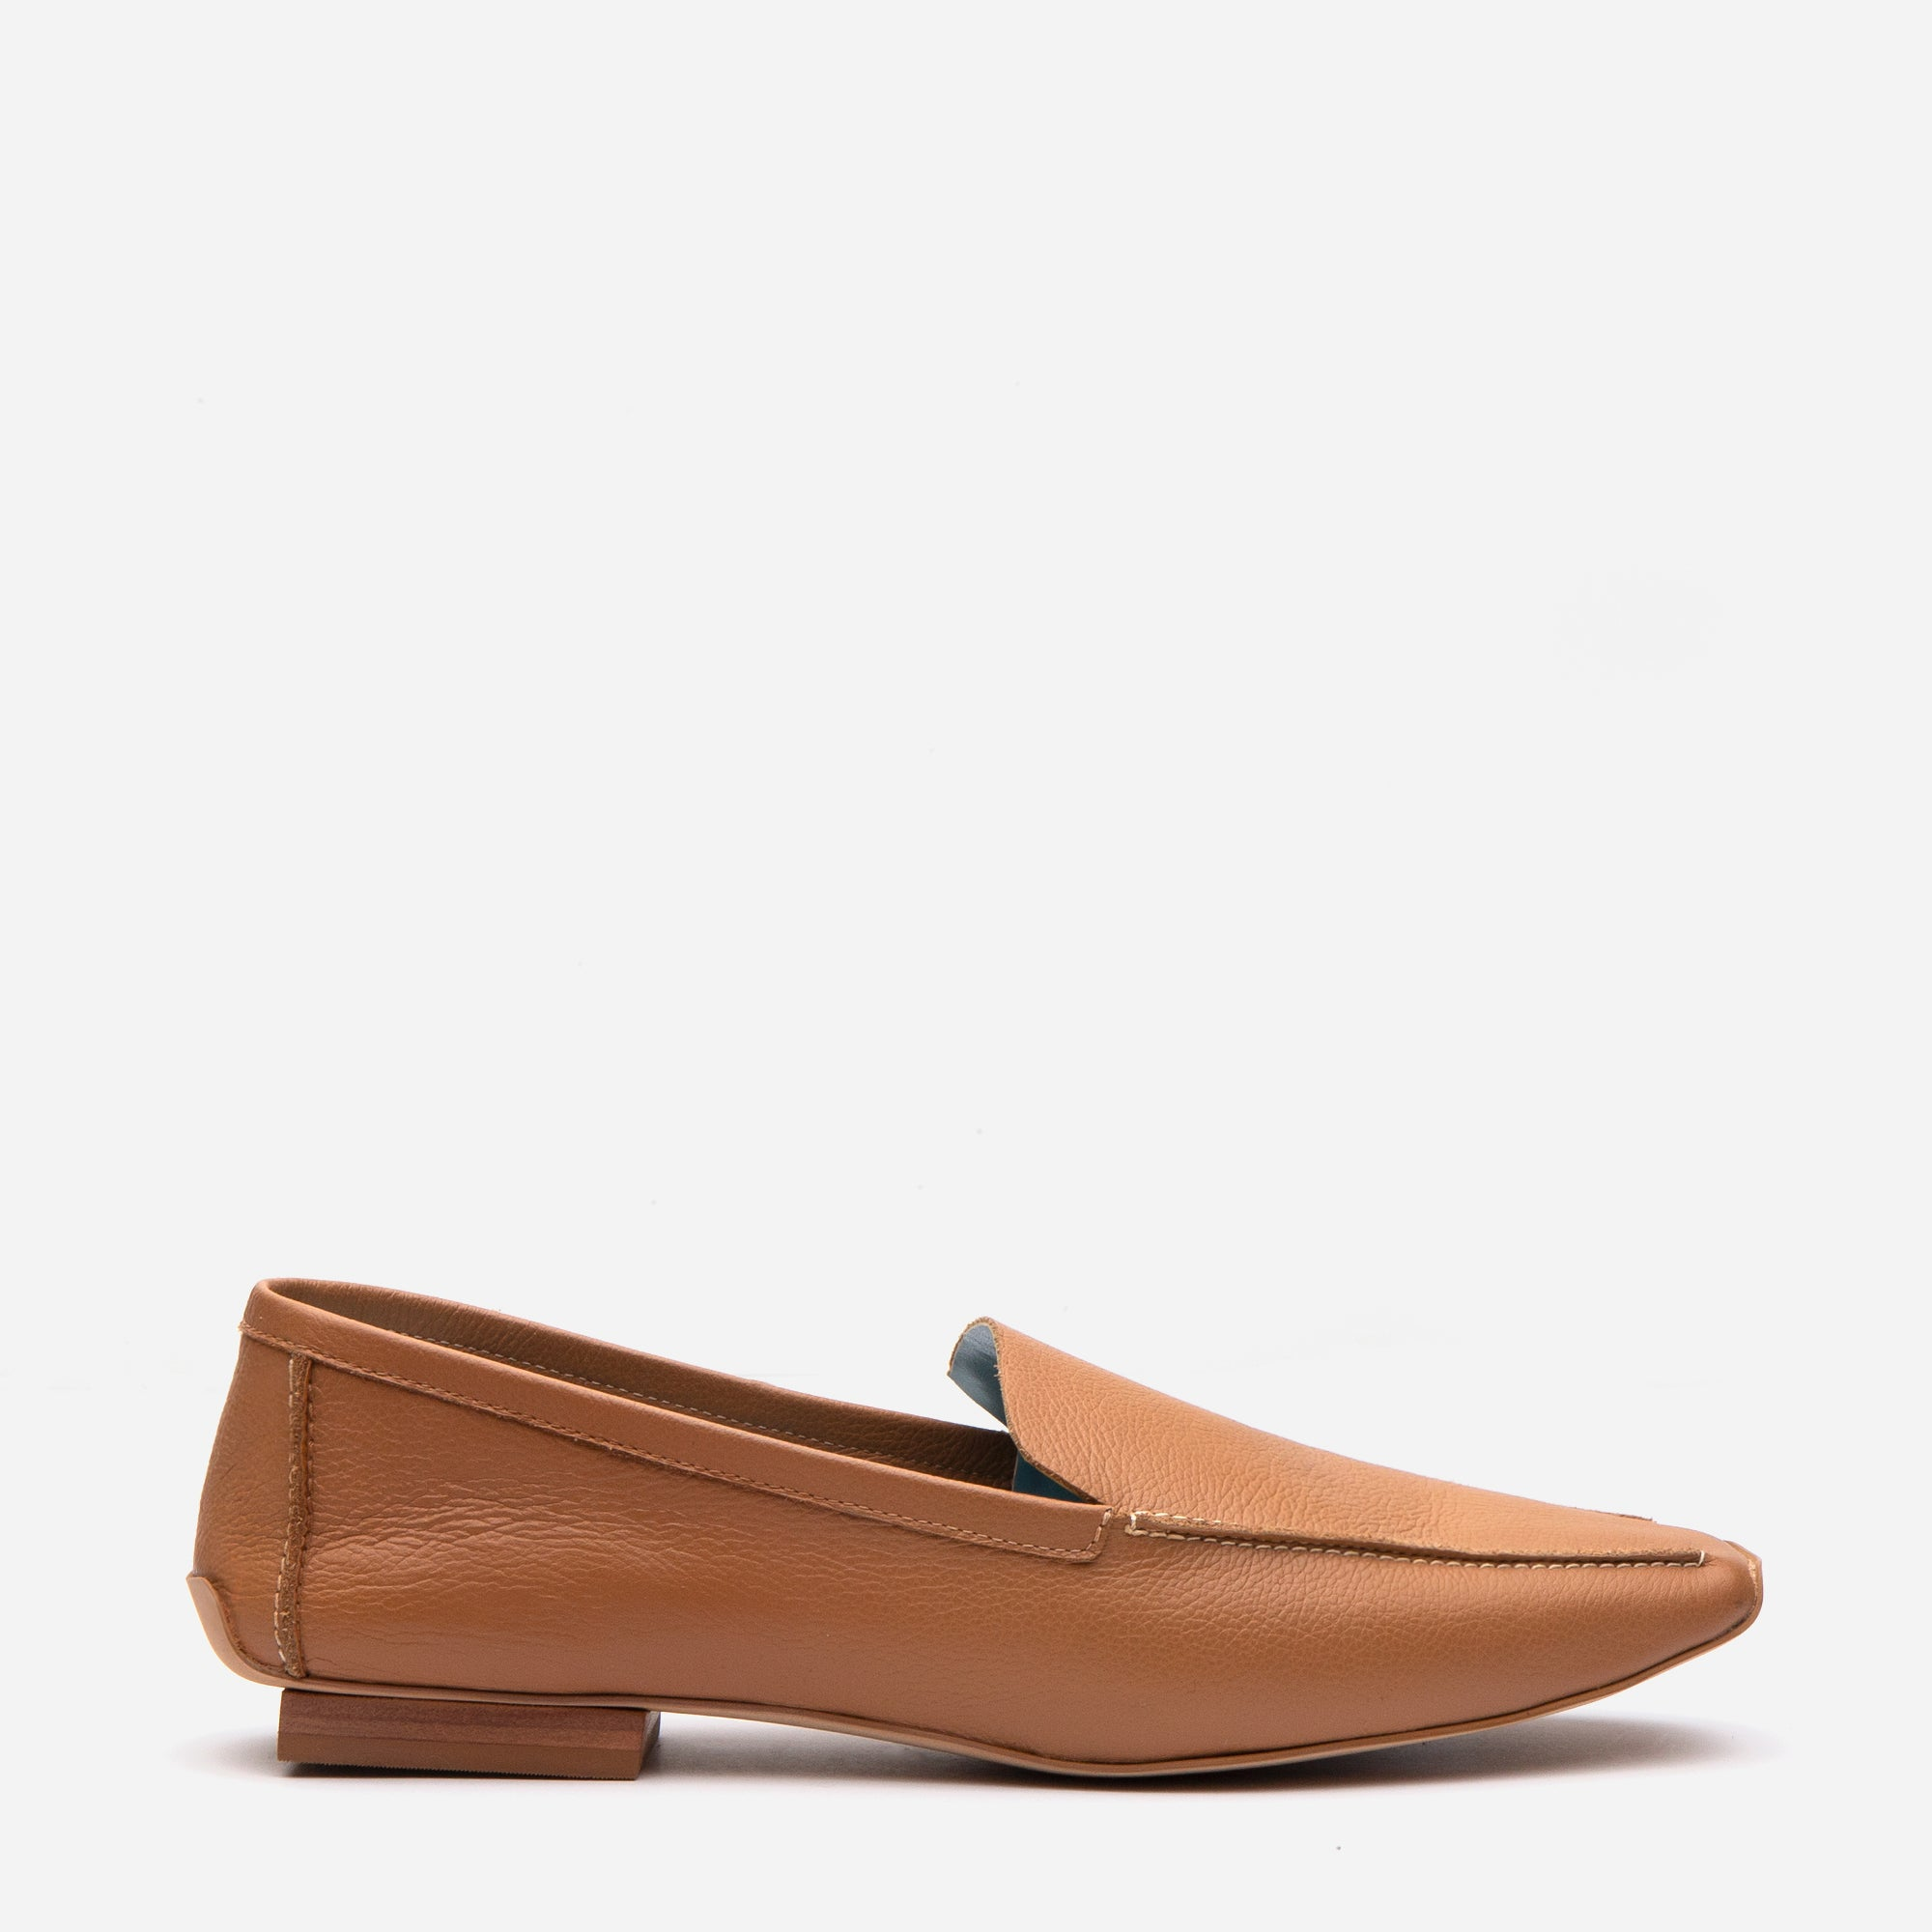 Elyce Loafer Camel Leather - Frances Valentine